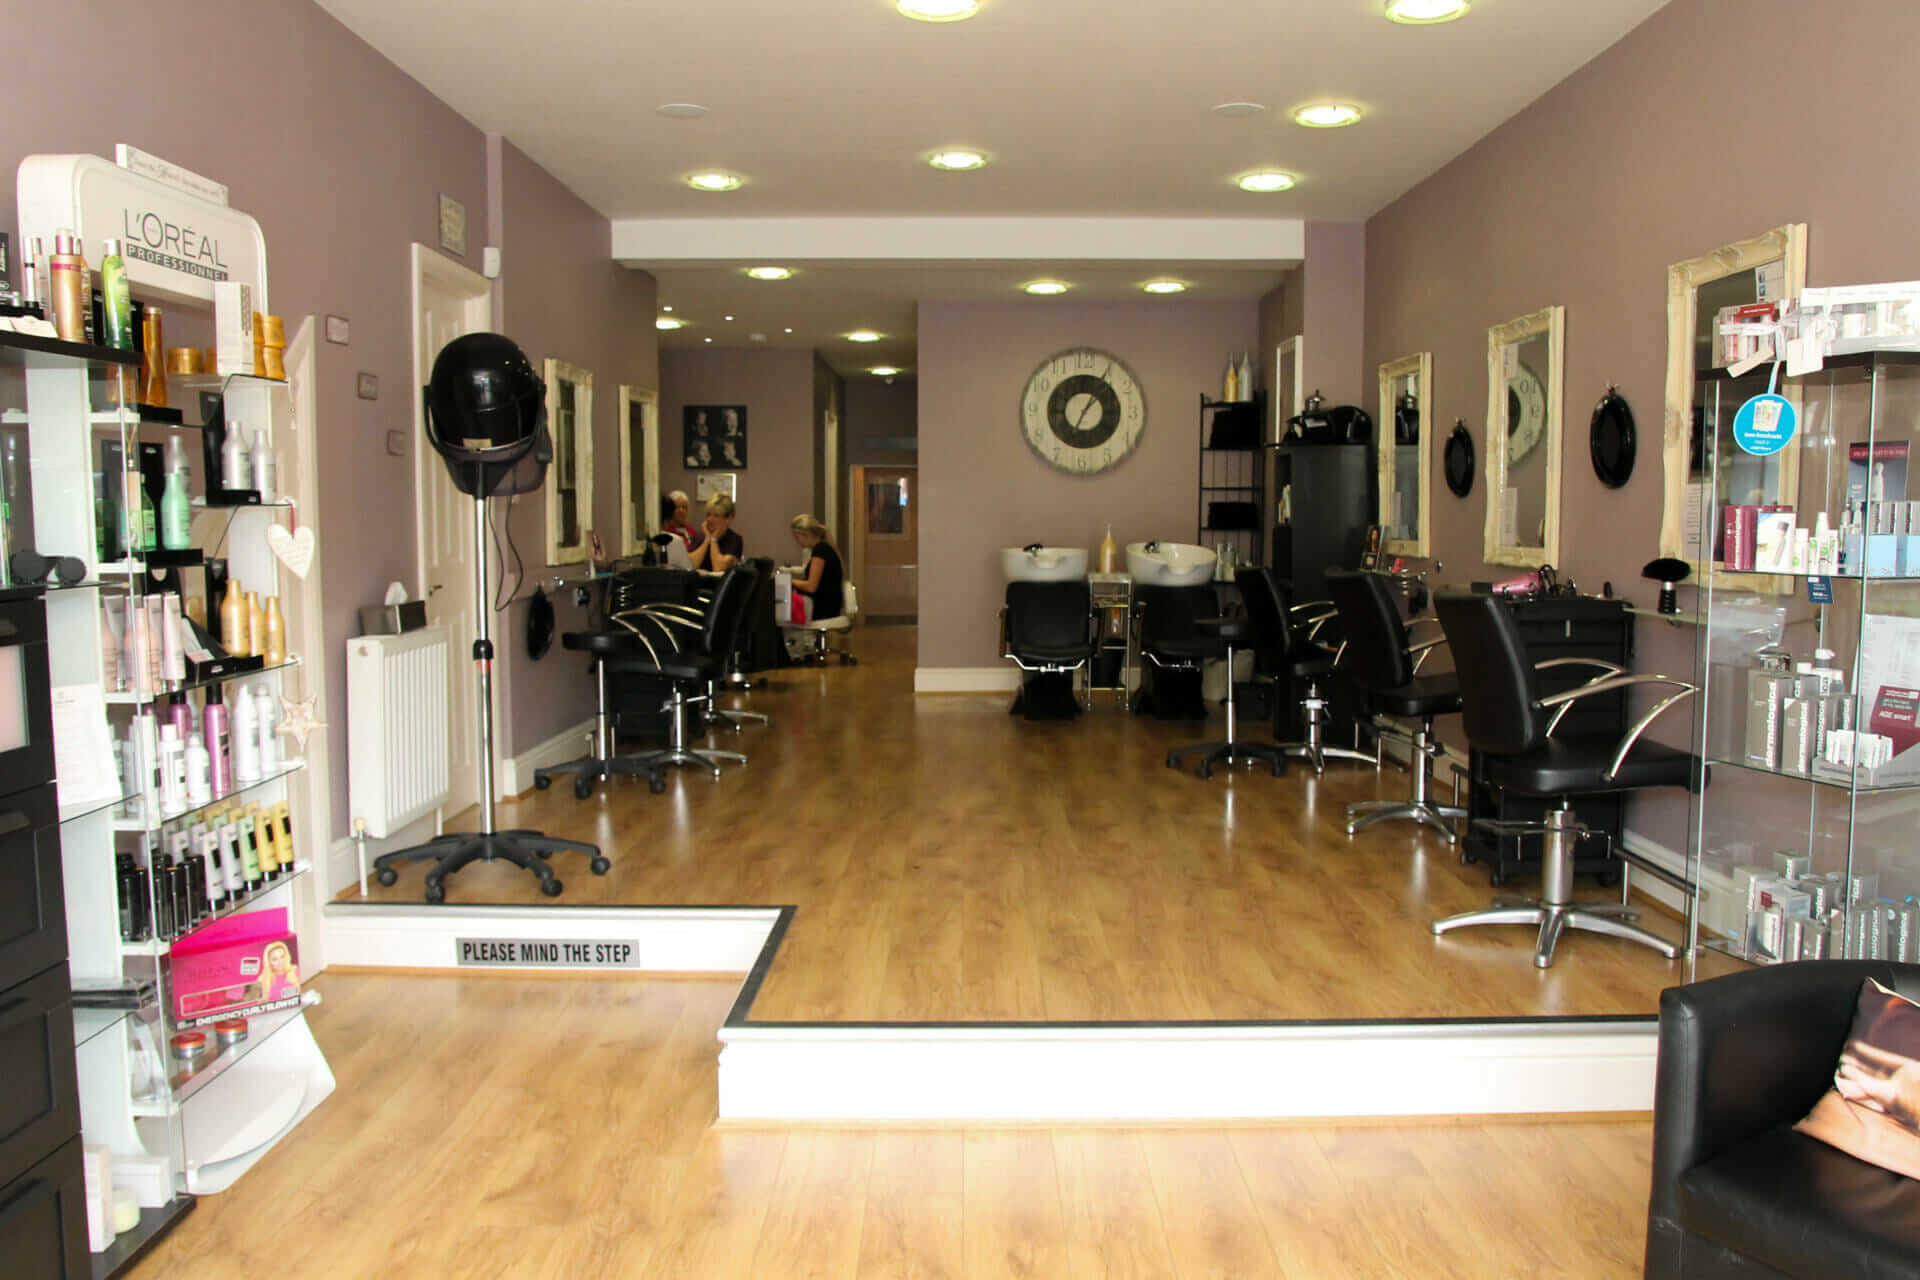 Serenity-hairdressing-salon-Orpington-2